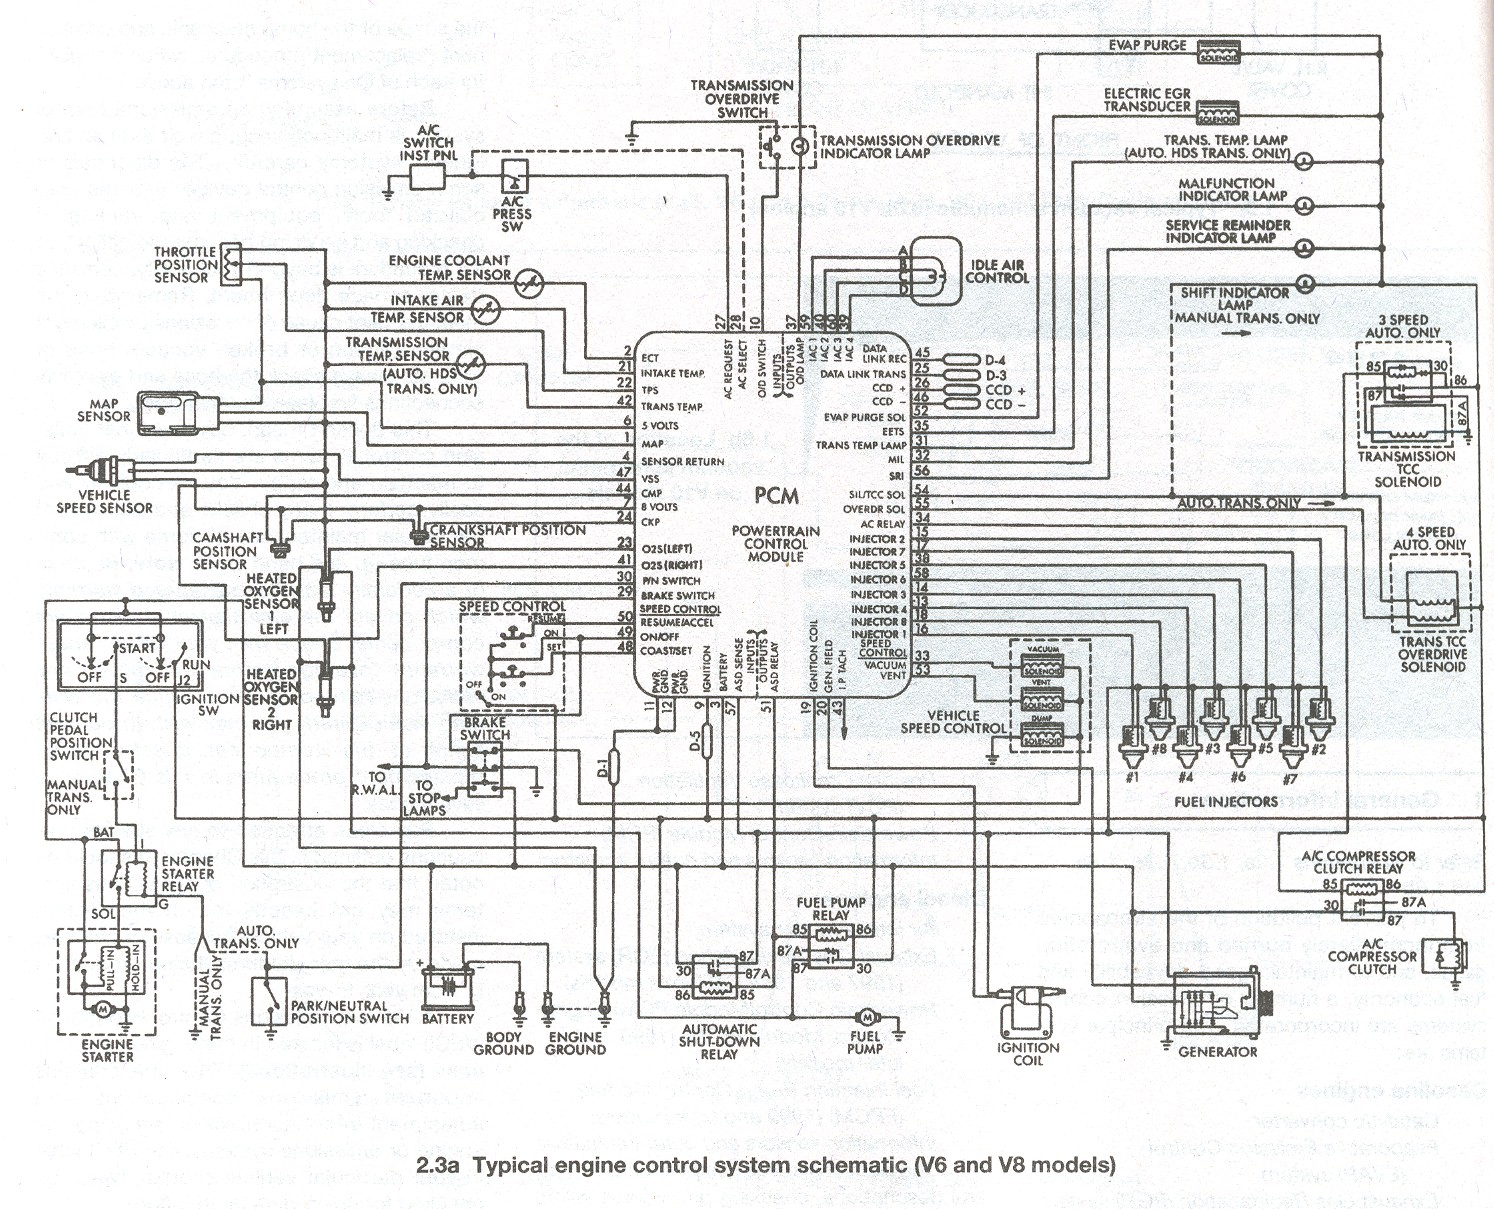 1969 vw beetle classic fuse box diagram